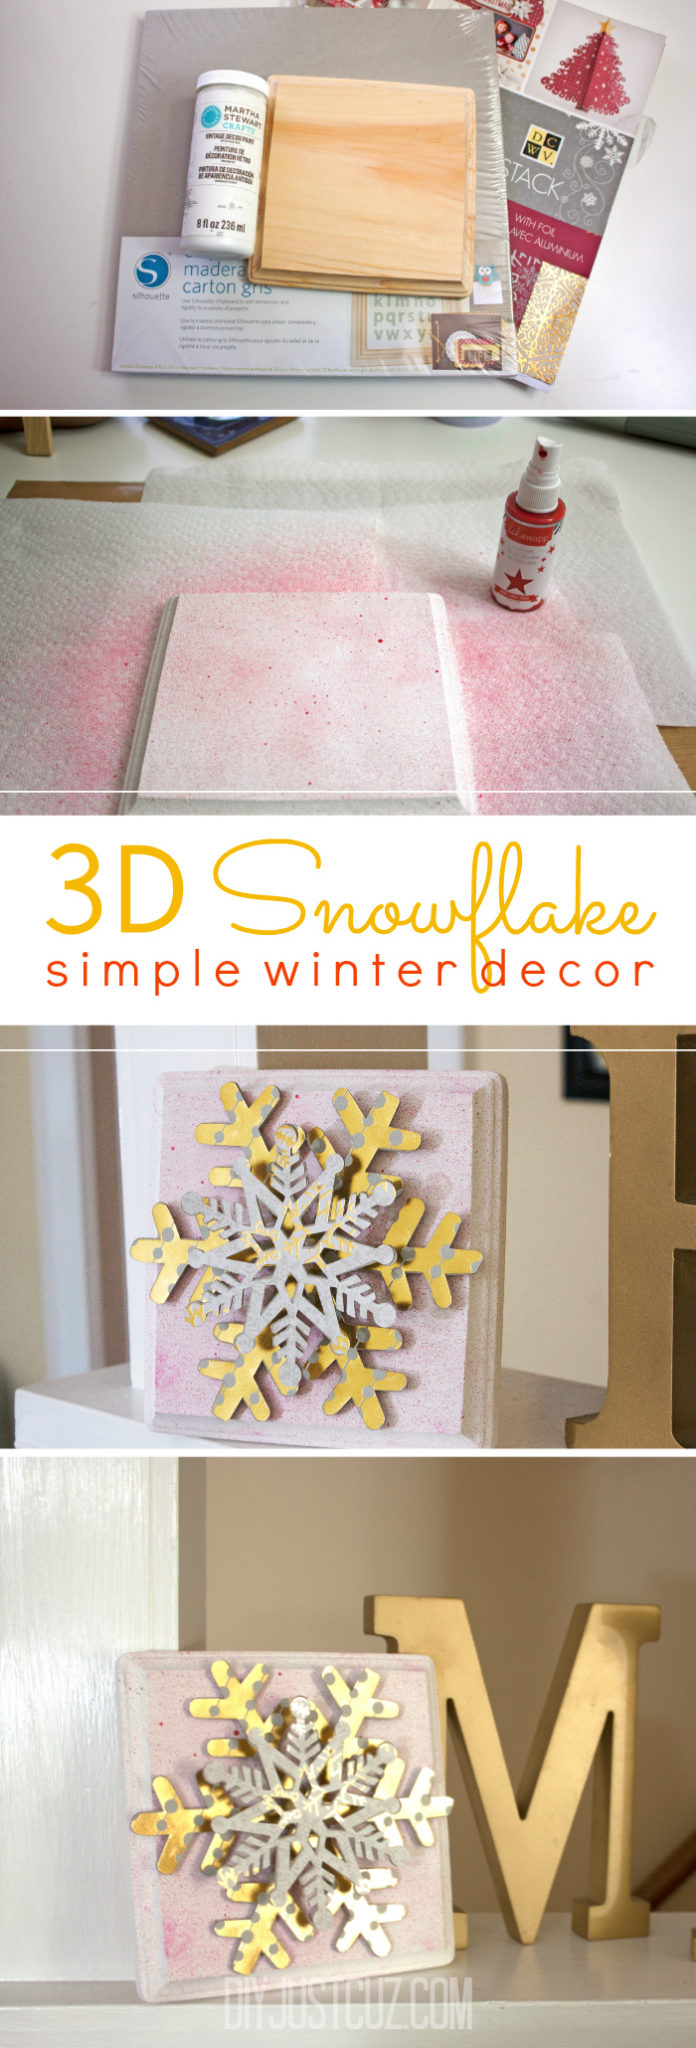 Create simple winter decor with these 3D snowflakes. They are perfect for holiday and winter decorating.